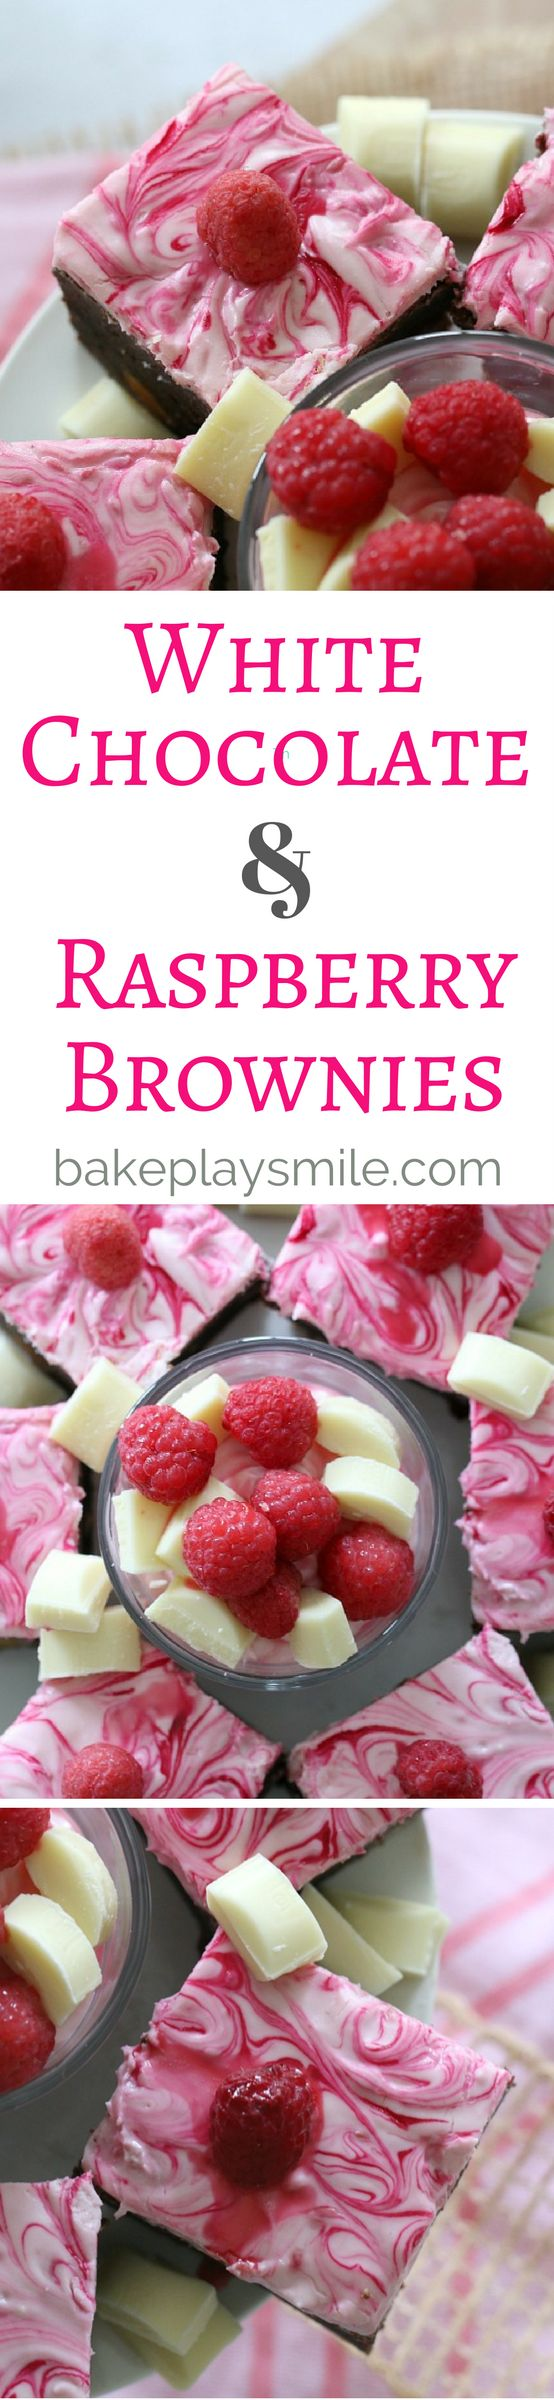 The very BEST White Chocolate & Raspberry Brownies!!!!!!!!!!!! Classic chewy…